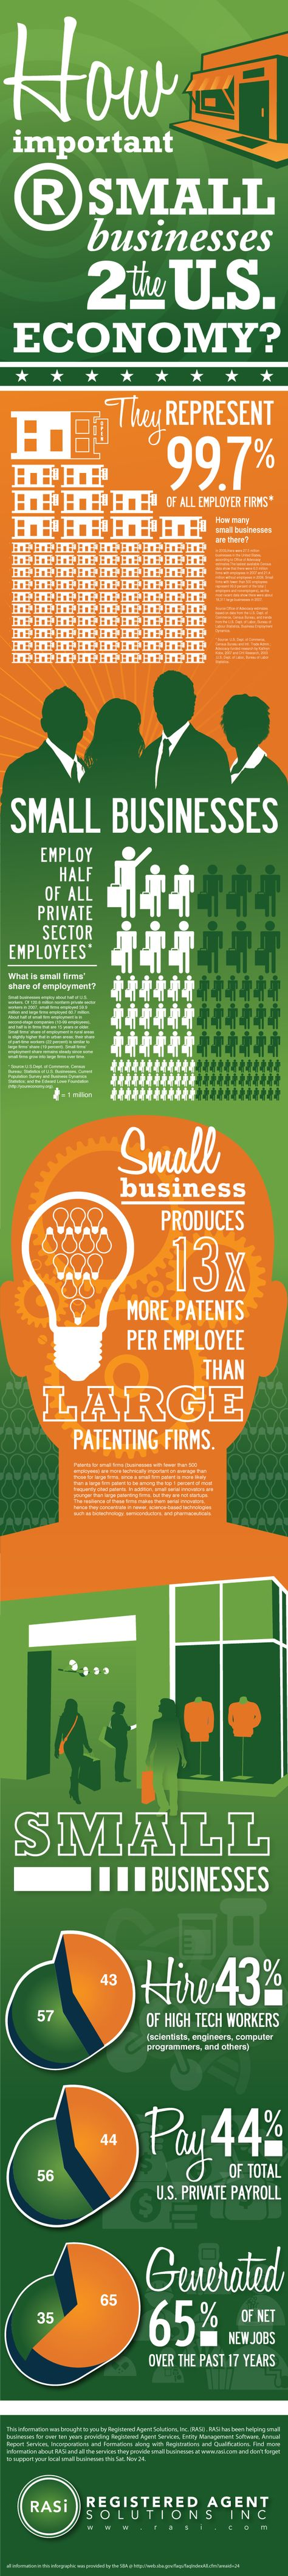 The importance of small businesses to the United States overall economy has never been so evident. Our Infographic illustrates the great contributions